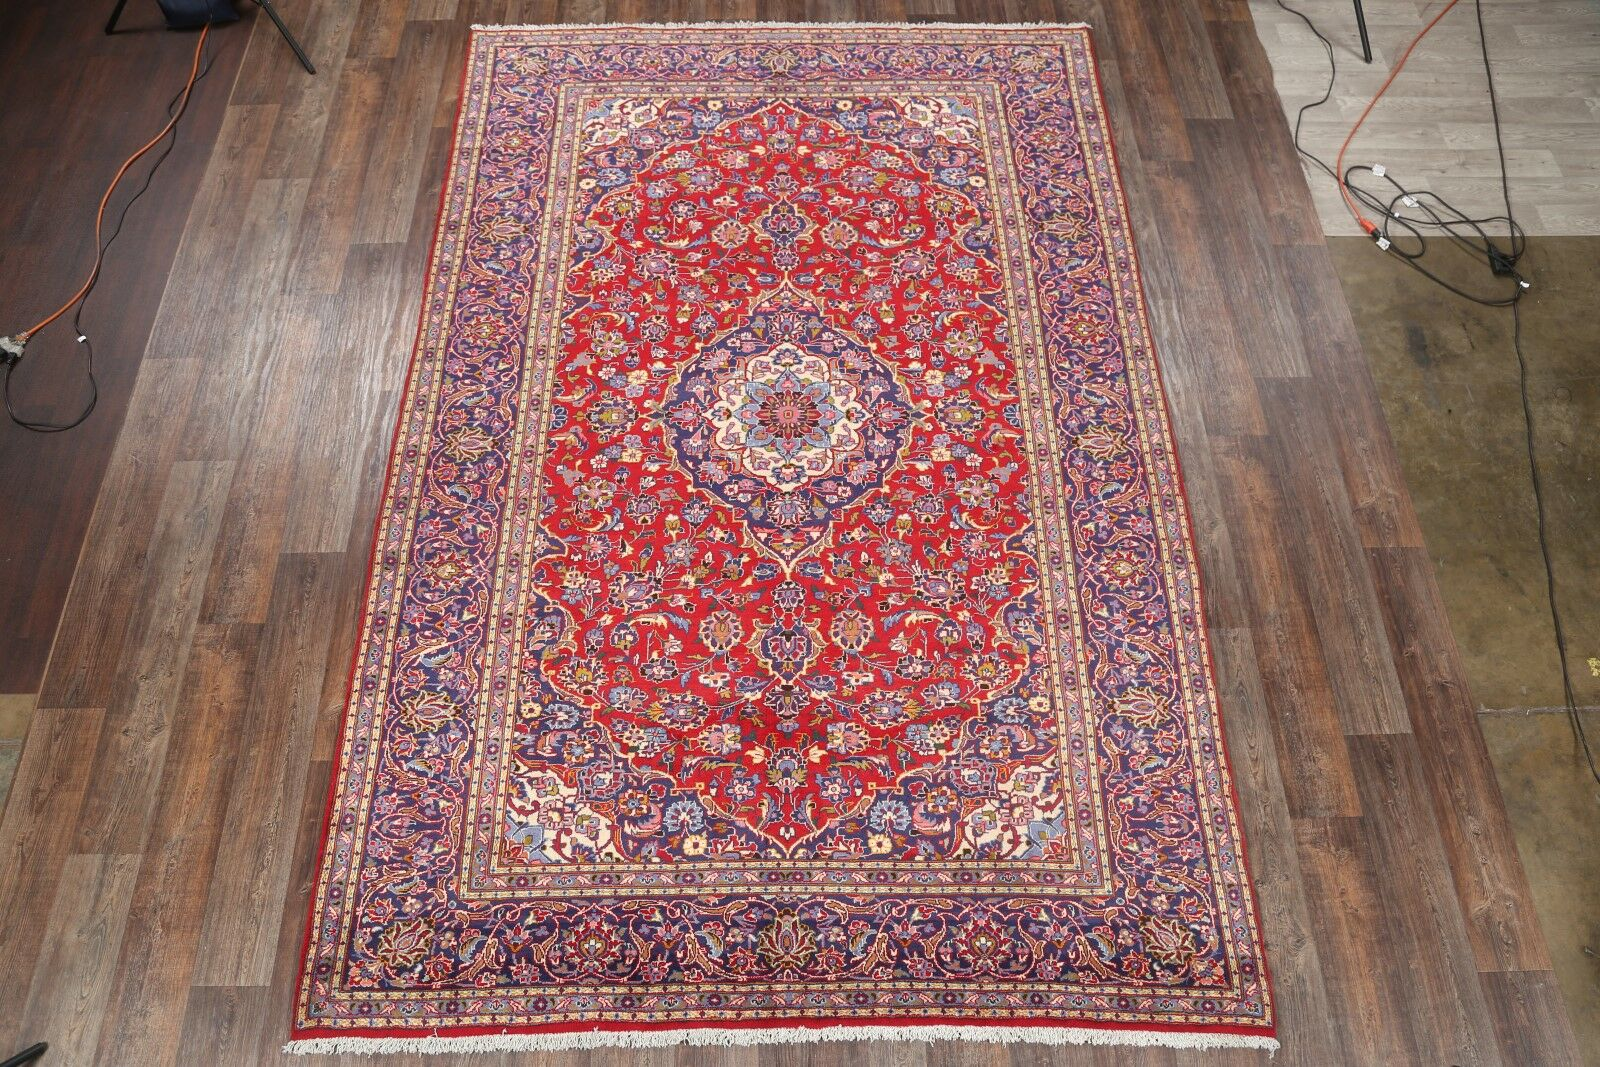 One-of-a-Kind Kashan Vintage Persian Traditional Hand-Knotted 7'10